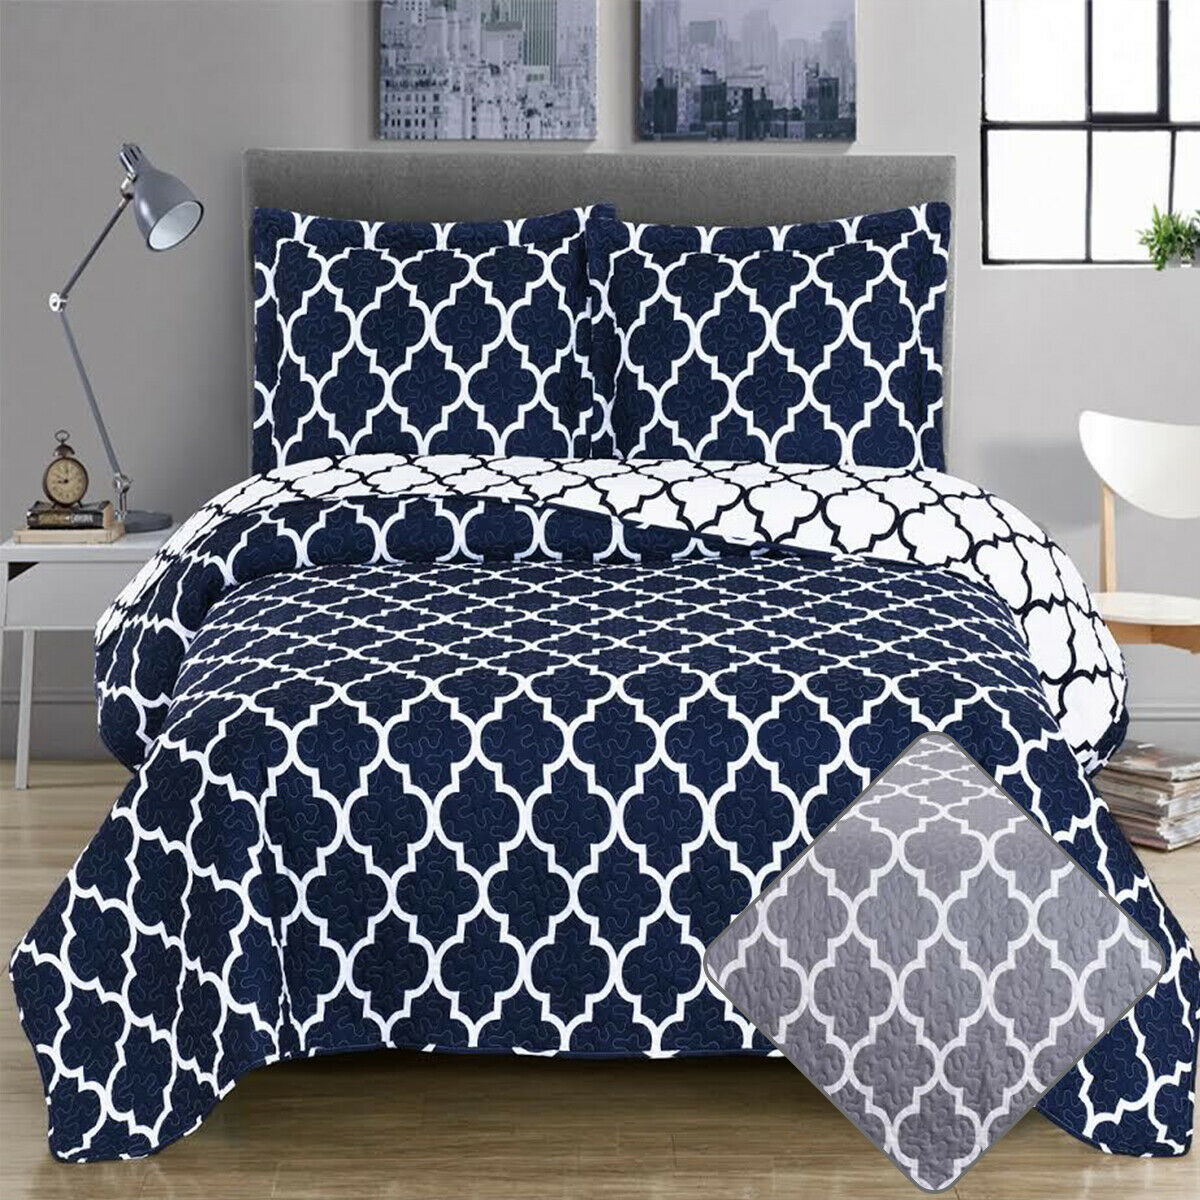 Meridian 3 Piece Quilt Set with Shams Reversible Geometric Bedspread Coverlets